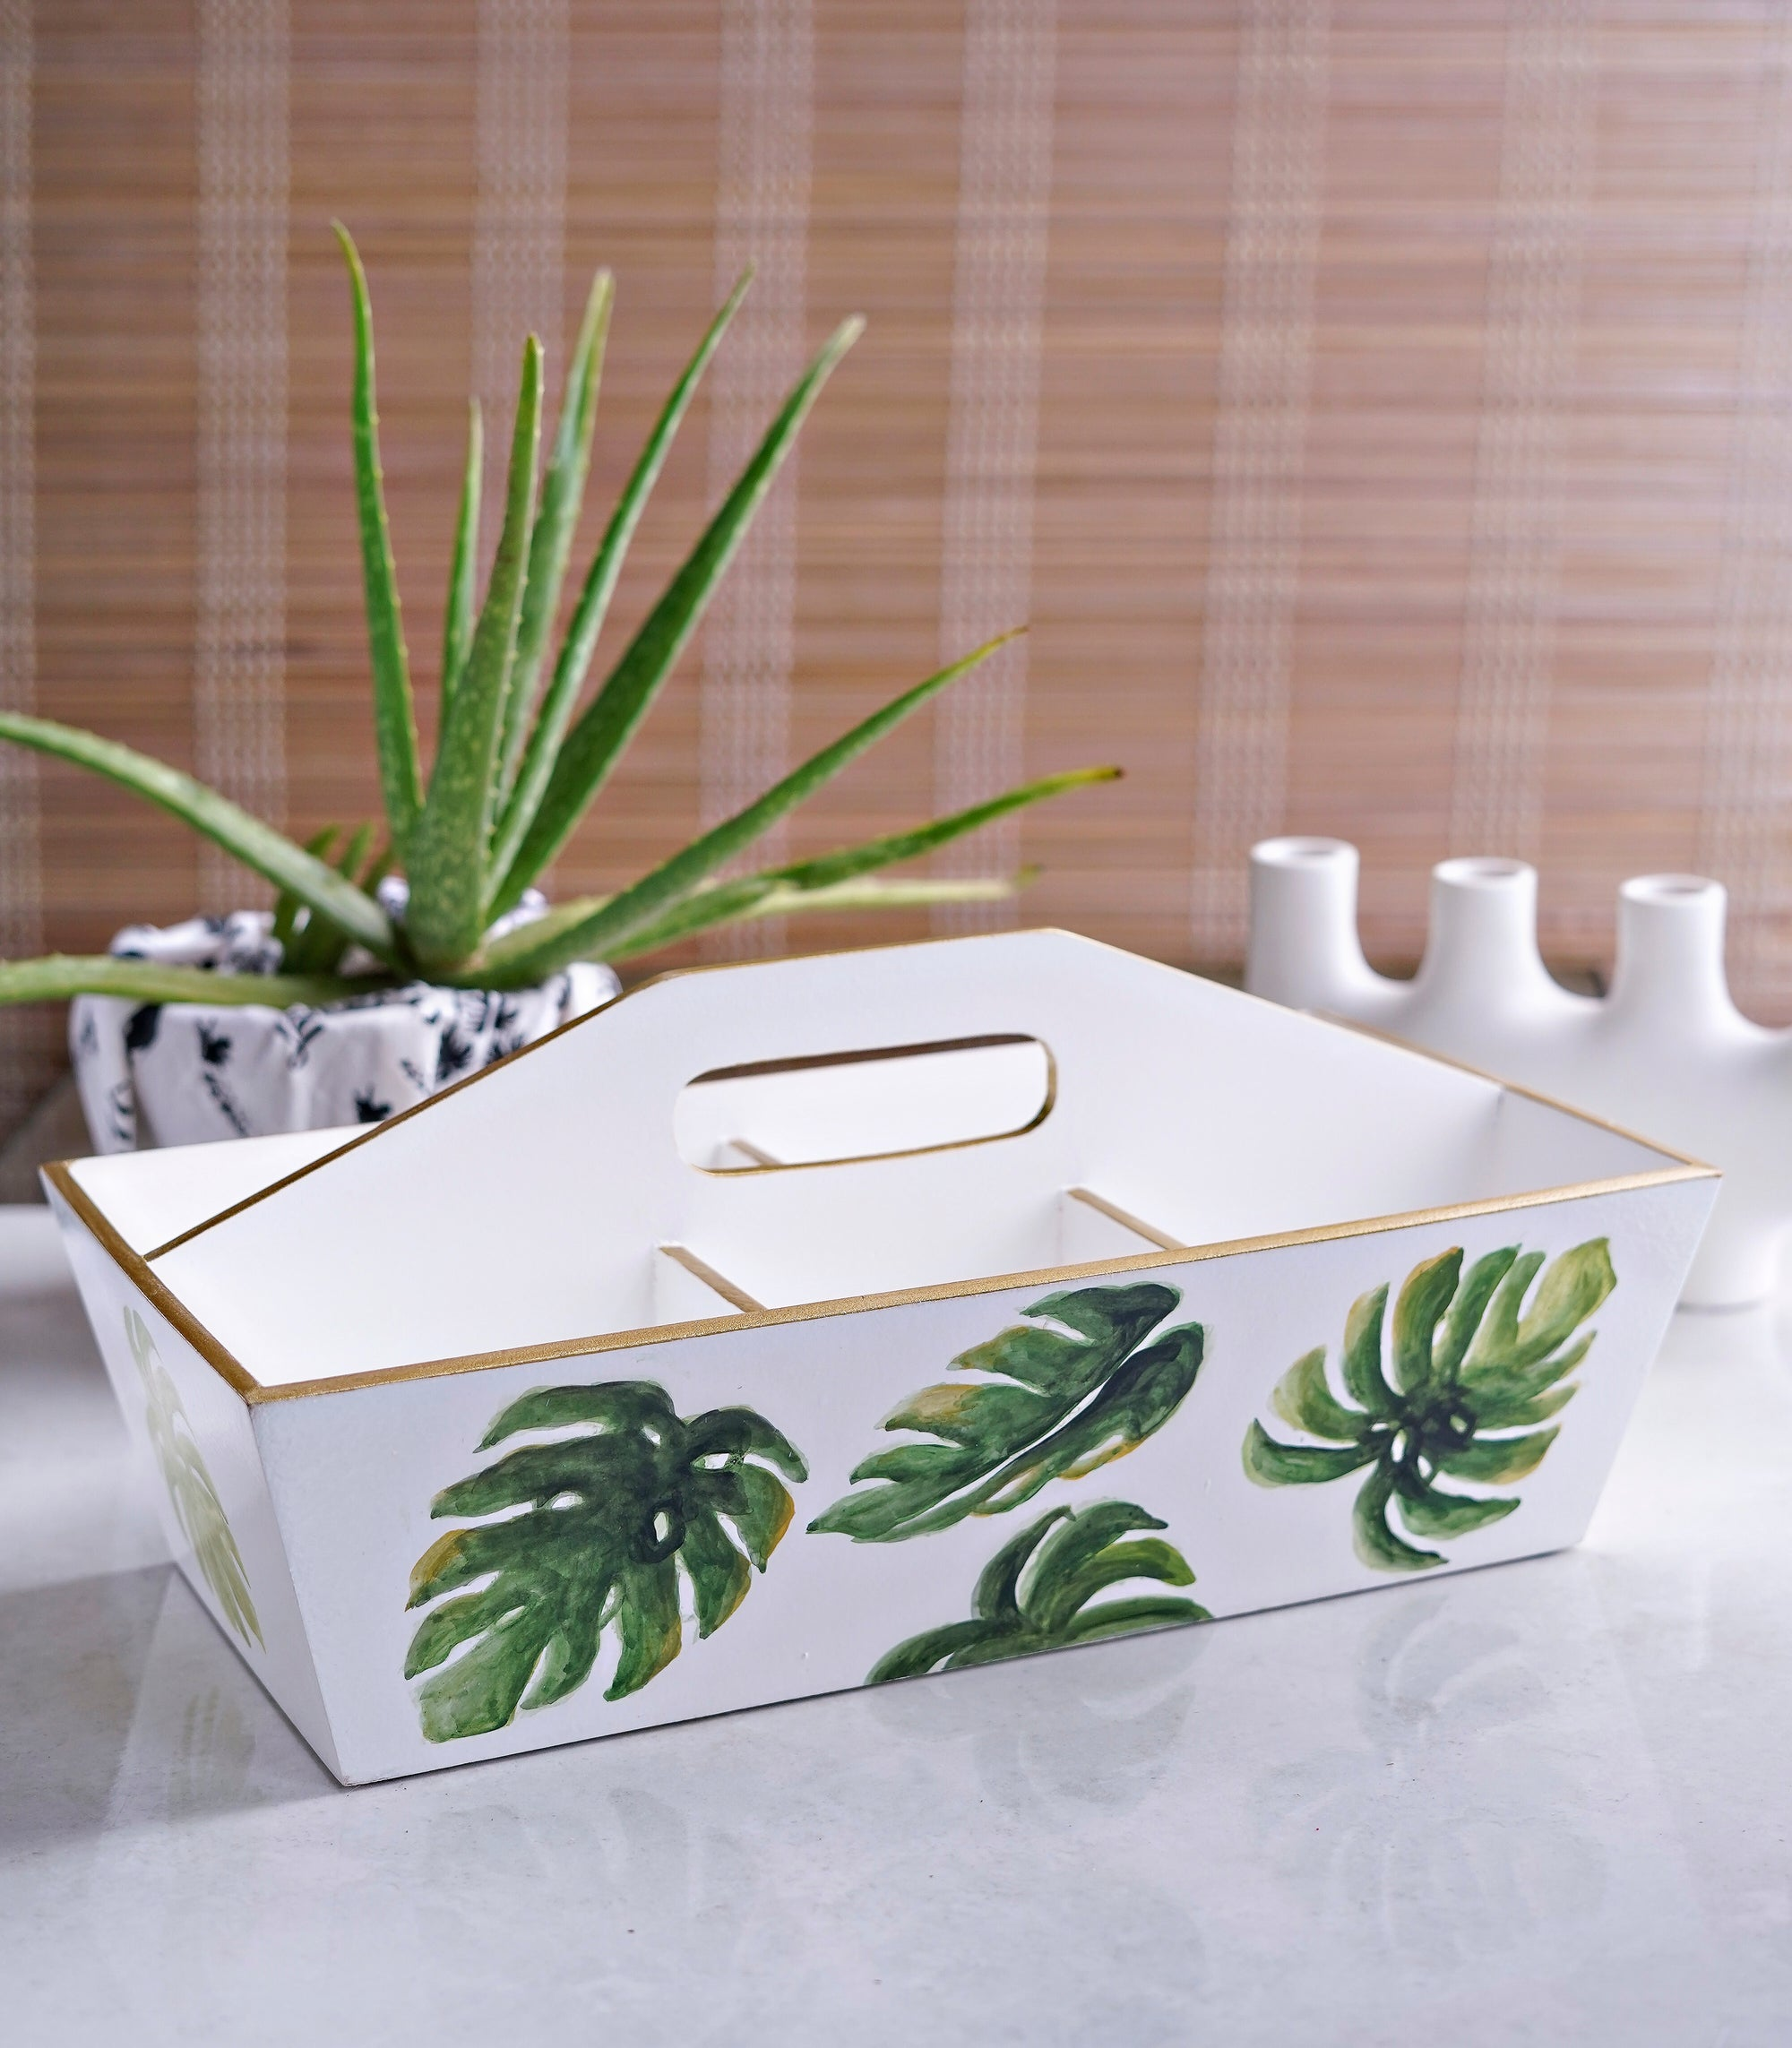 Anitz Caddy Organizer - Monstera